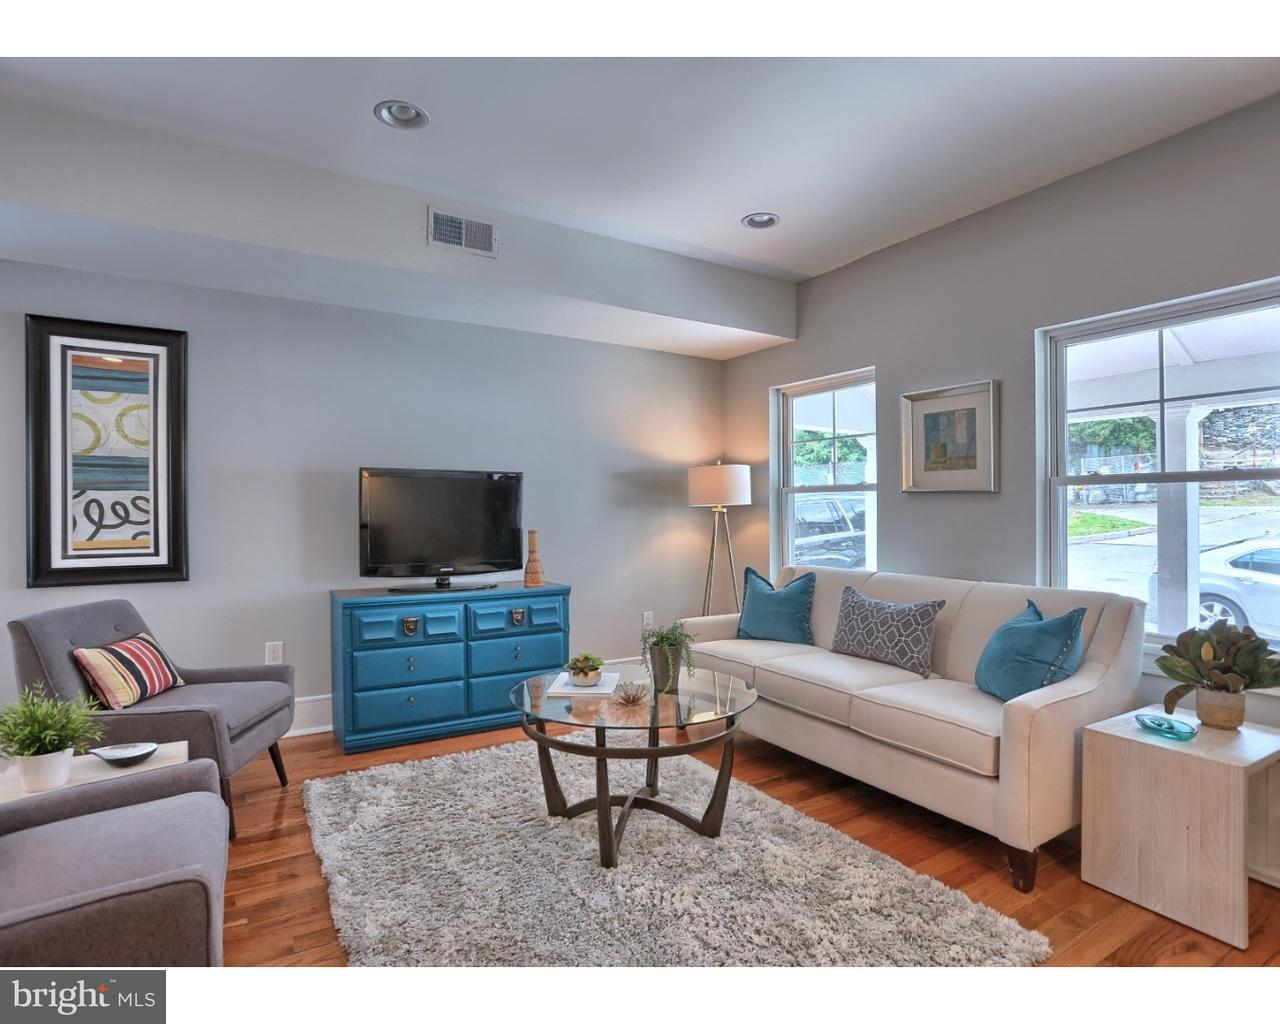 547 APPLE ST, WEST CONSHOHOCKEN - Listed at $519,000,